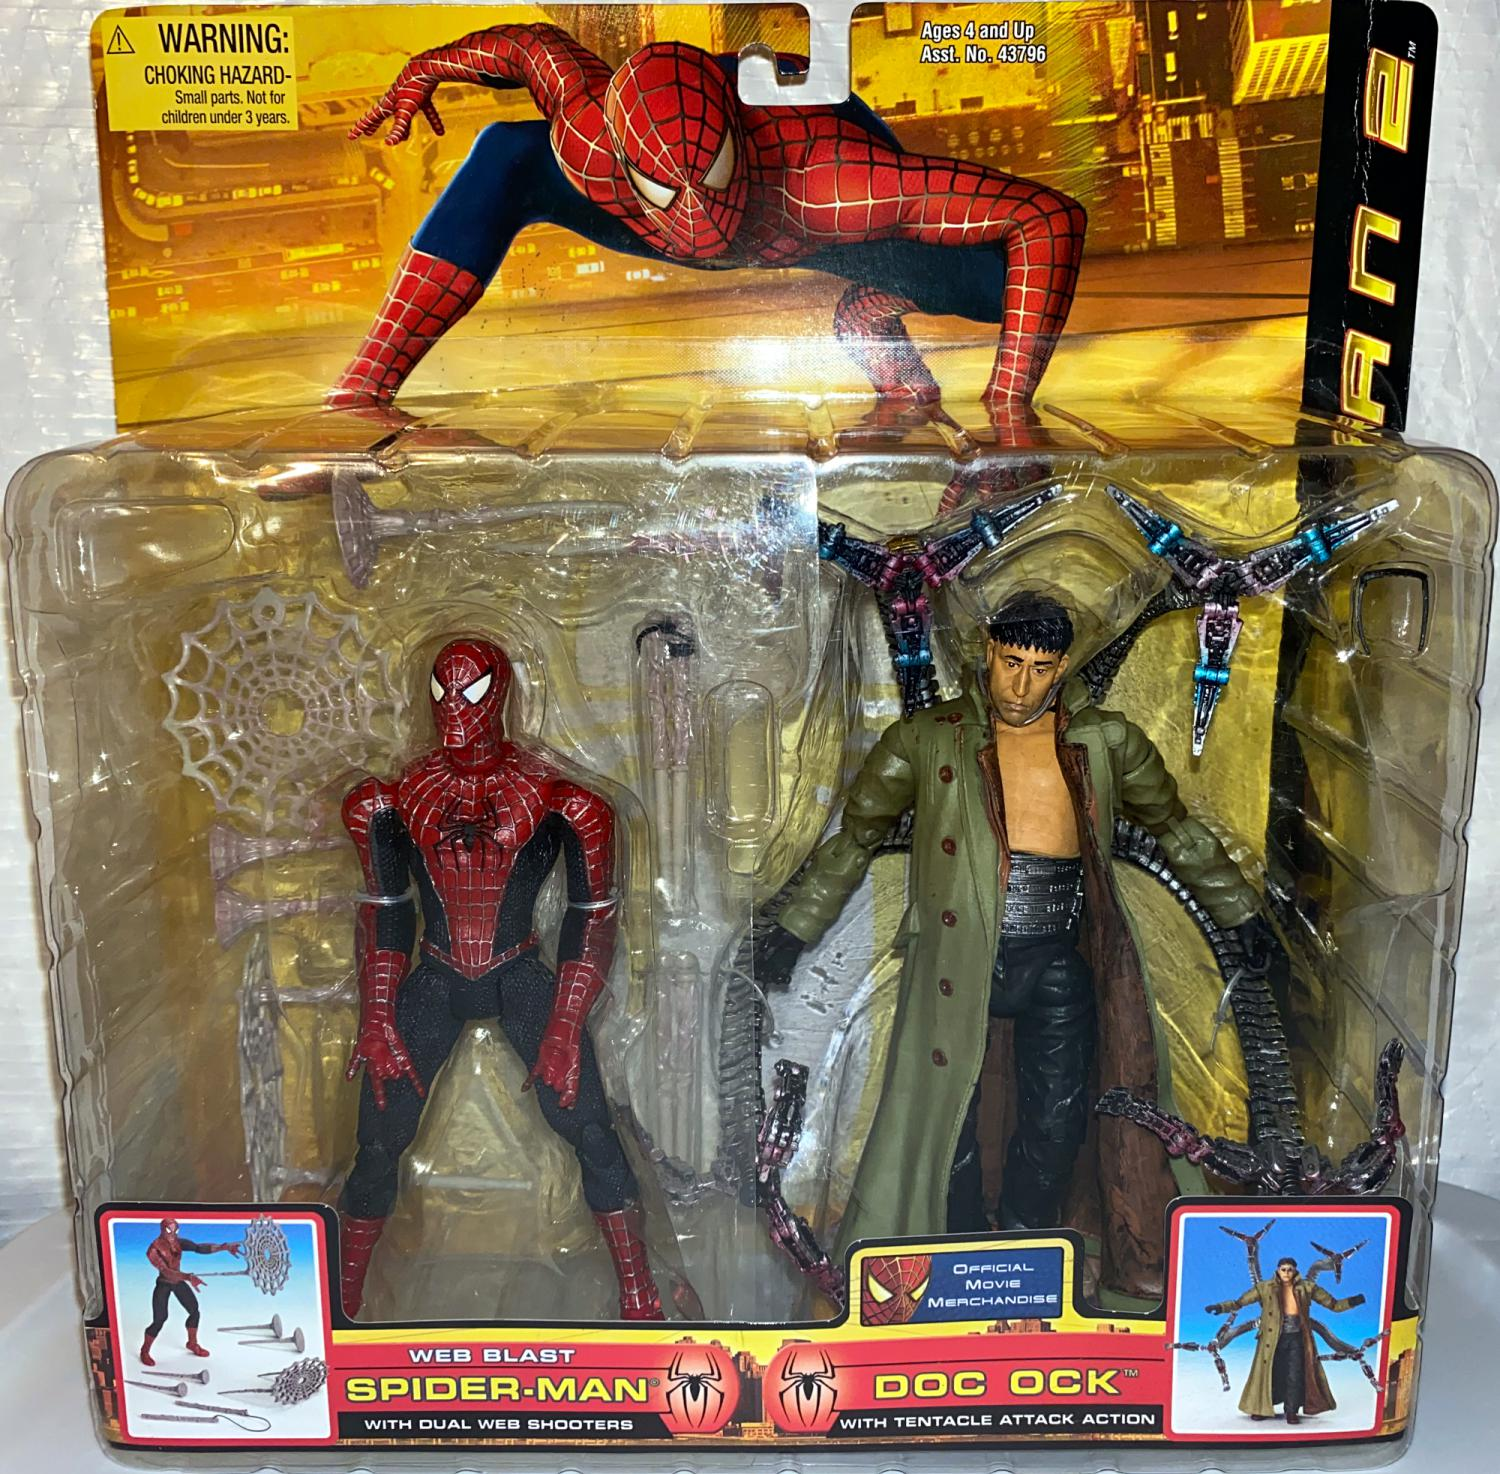 Web Blaster Spider-Man and Doc Ock with Tentacle Attack Action